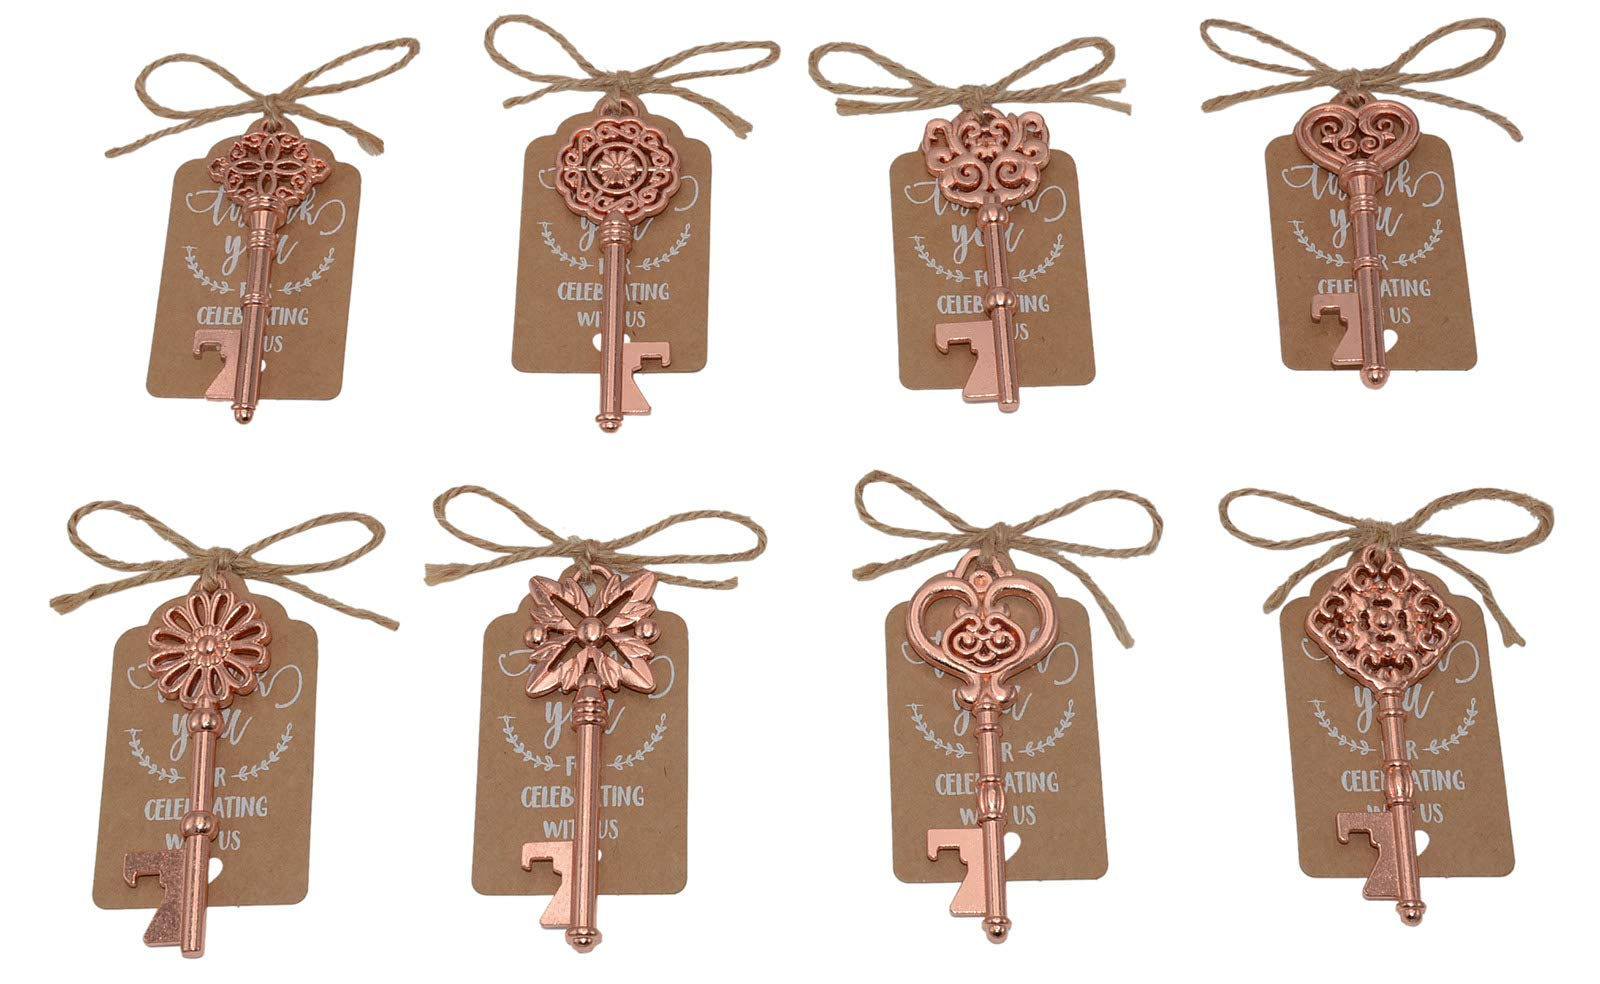 Wedding Favors for Guests 40 Pack Mixed Large Skeleton Key Bottle Openers (Rose Gold,8 styles) with Tagand Twine Vintage Bridal Shower Favors Bottle Opener (Rose Gold 40pcs)